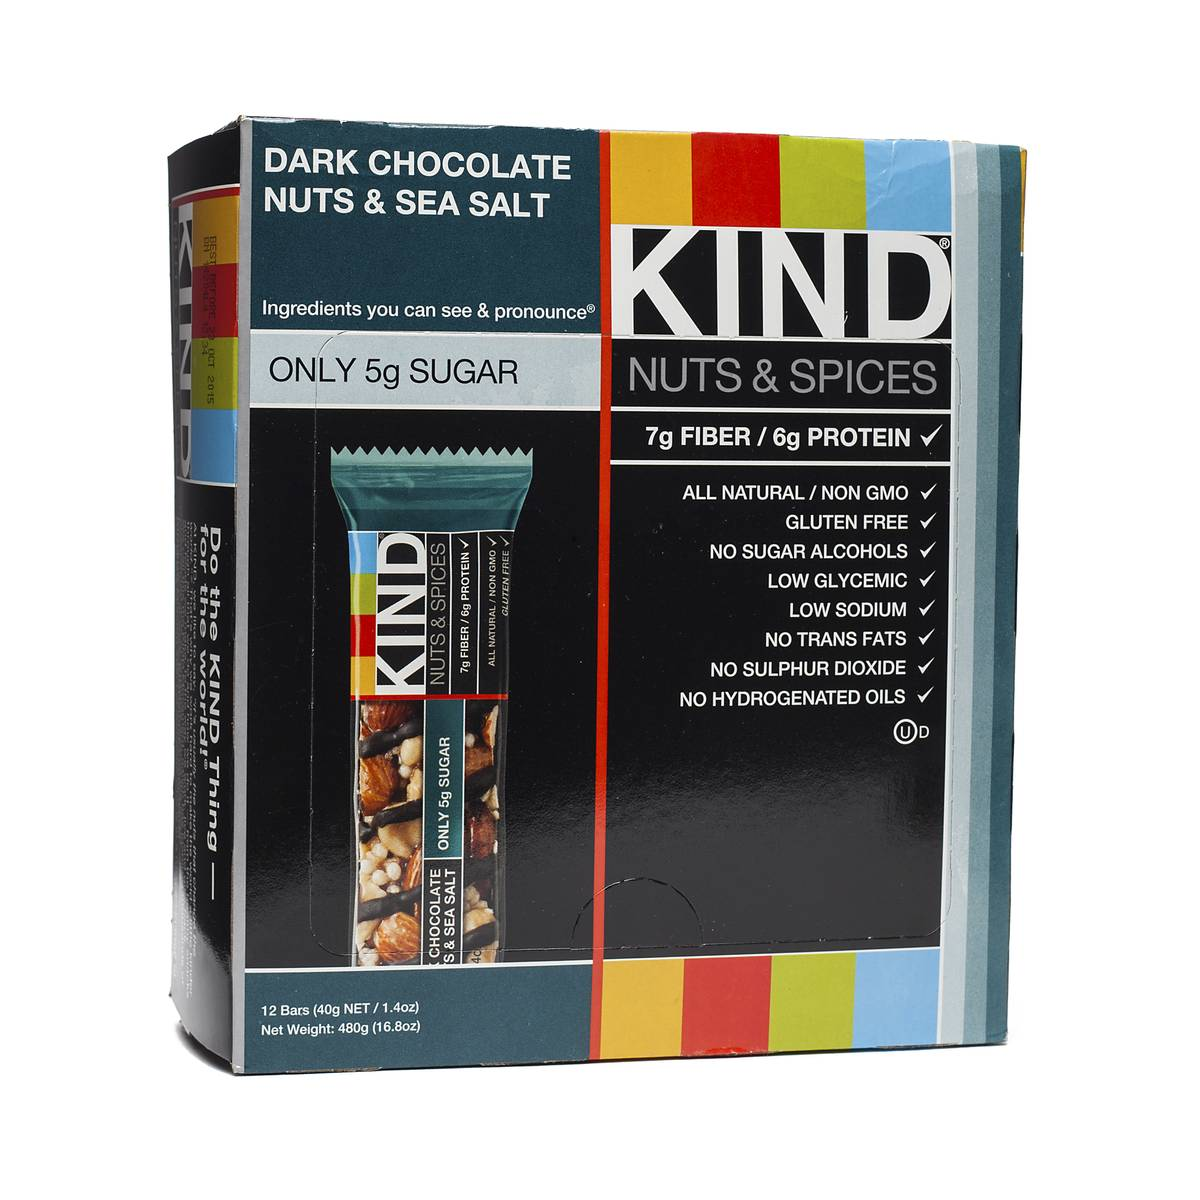 dark chocolate nuts & sea salt barskind - thrive market